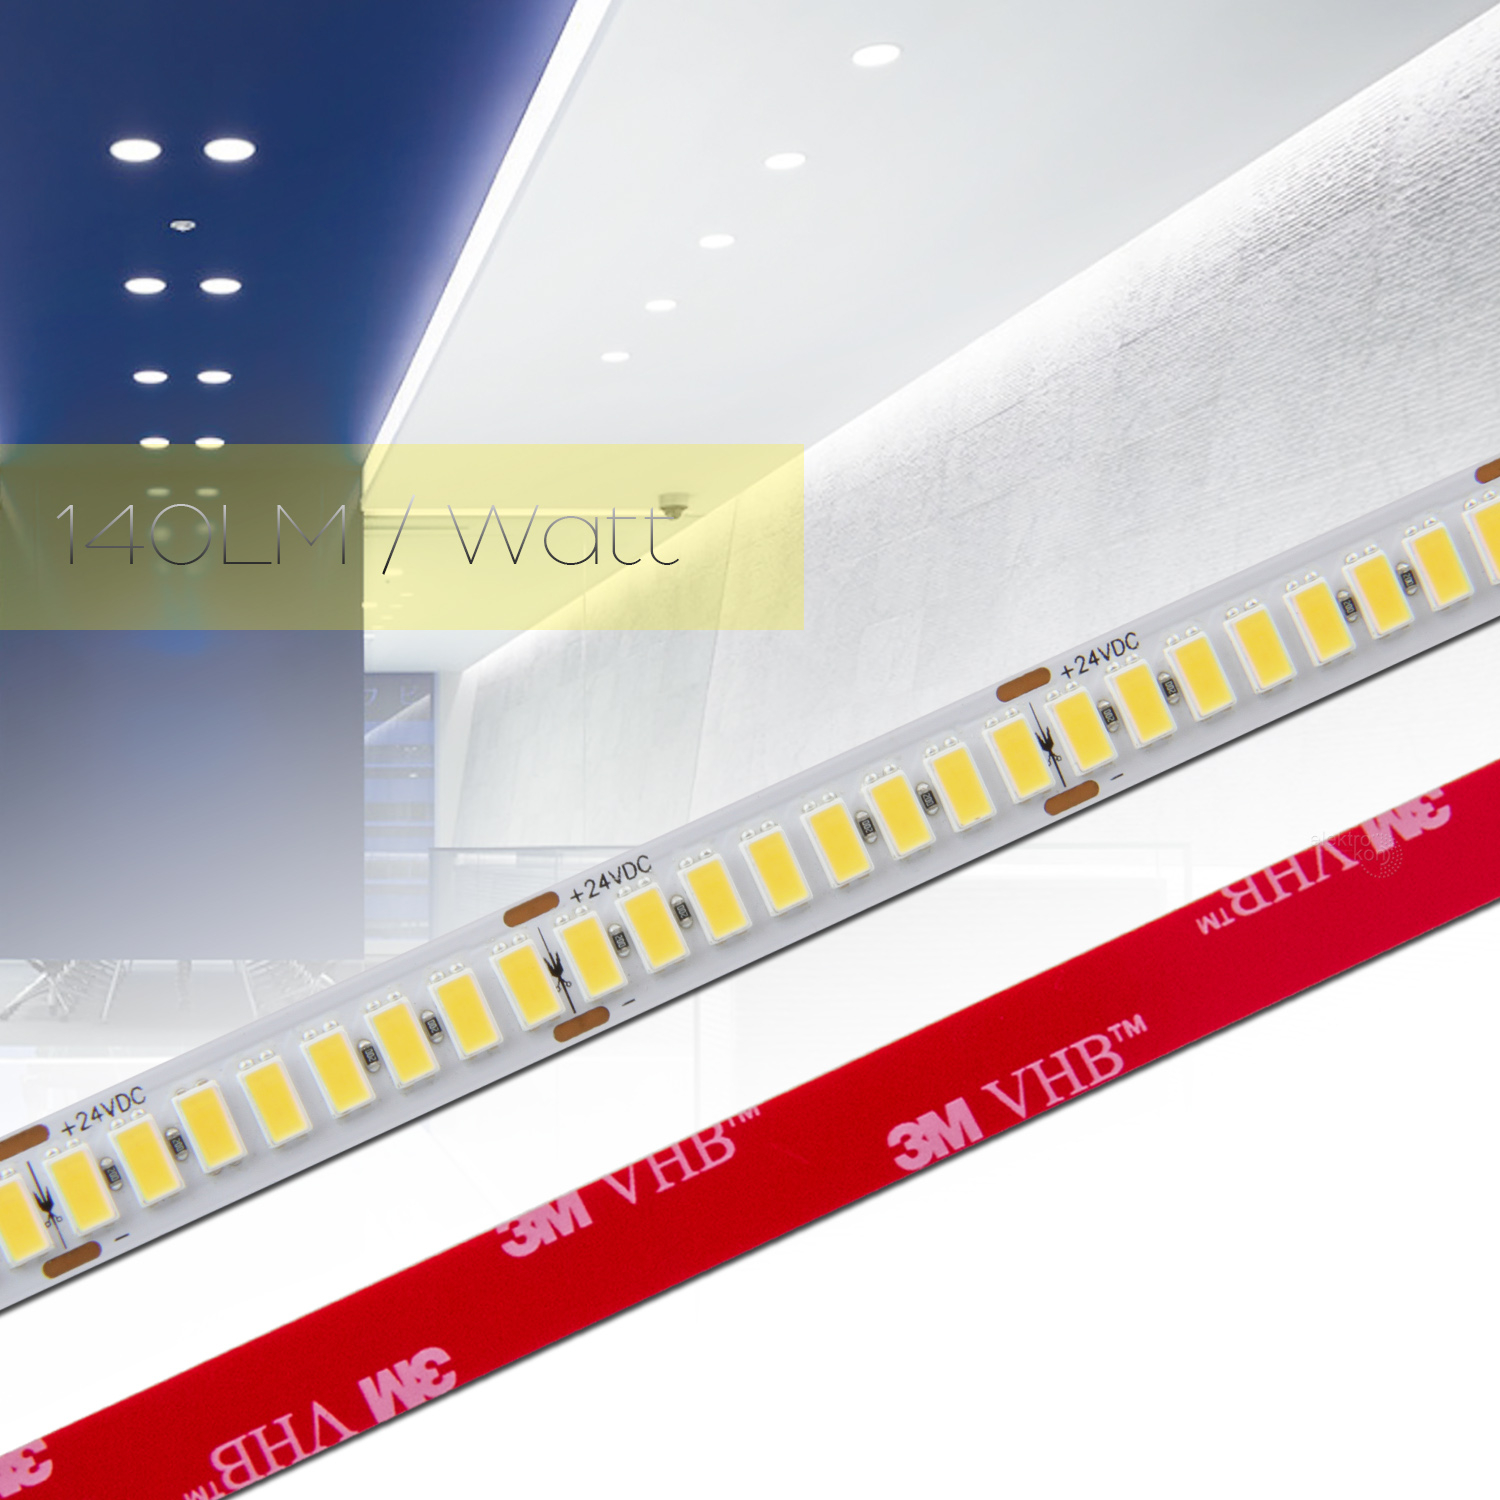 ✅ 0,5 bis 20m 140LM/Watt LED Strip Flex Band RA 90+, Leiste Streifen NEUTRAL WEIß 5630 224 LED/m 24Vdc